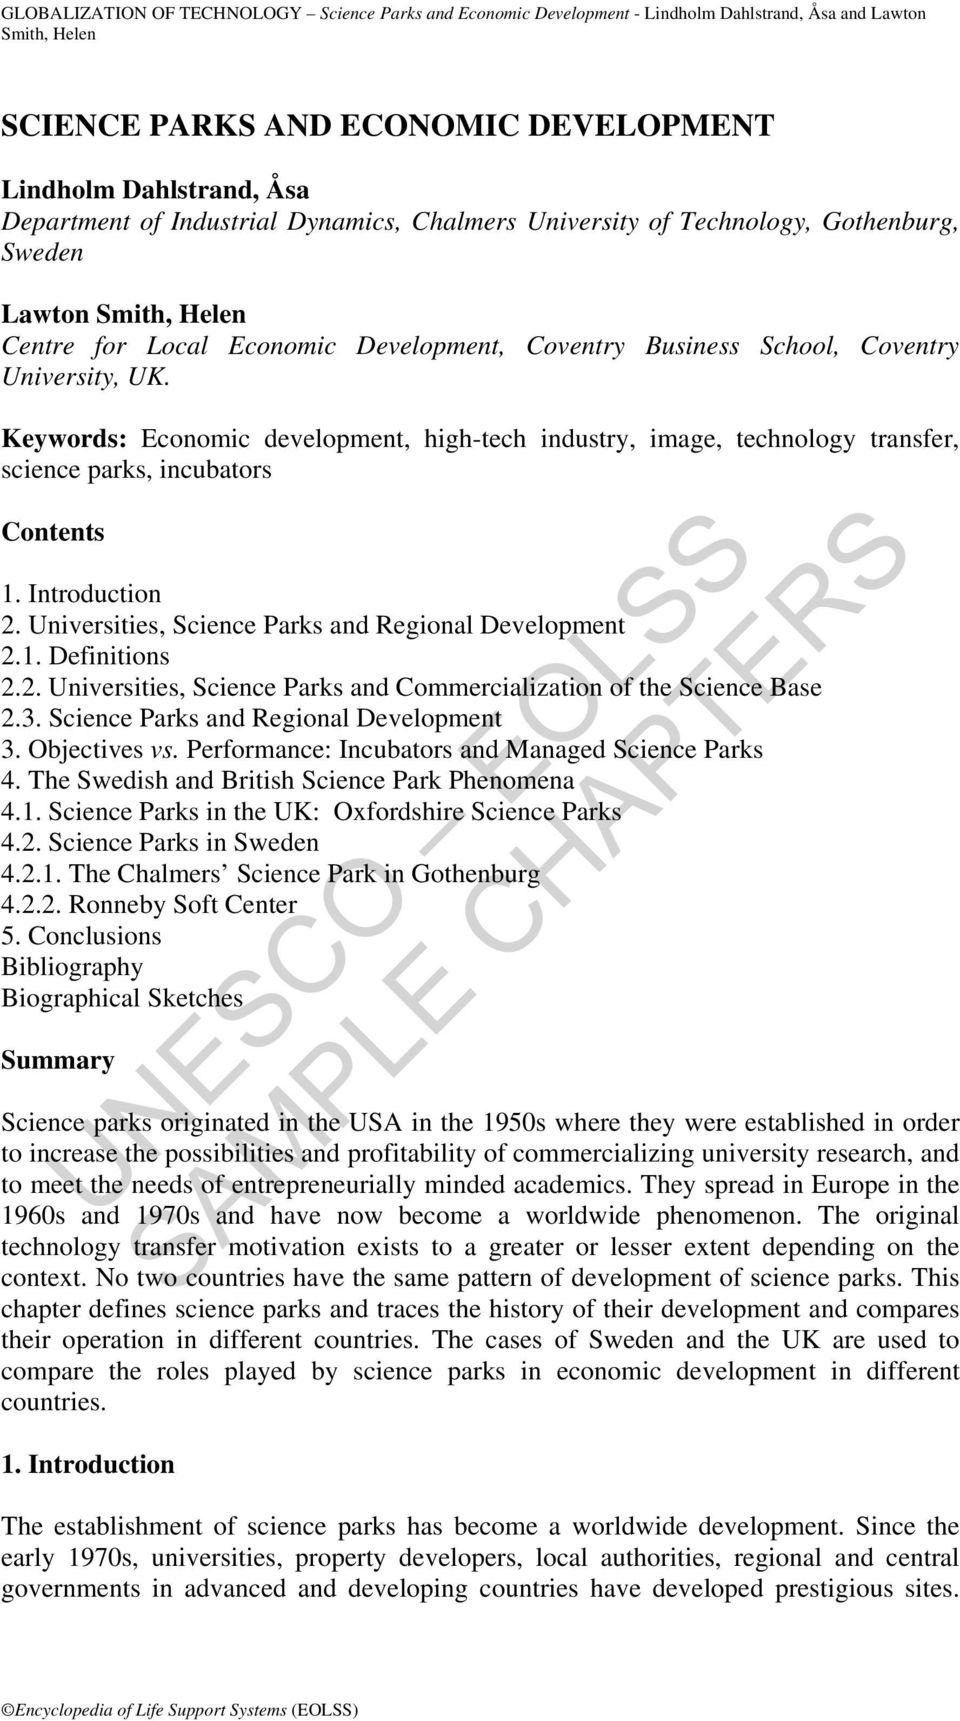 Universities, Science Parks and Regional Development 2.1. Definitions 2.2. Universities, Science Parks and Commercialization of the Science Base 2.3. Science Parks and Regional Development 3.